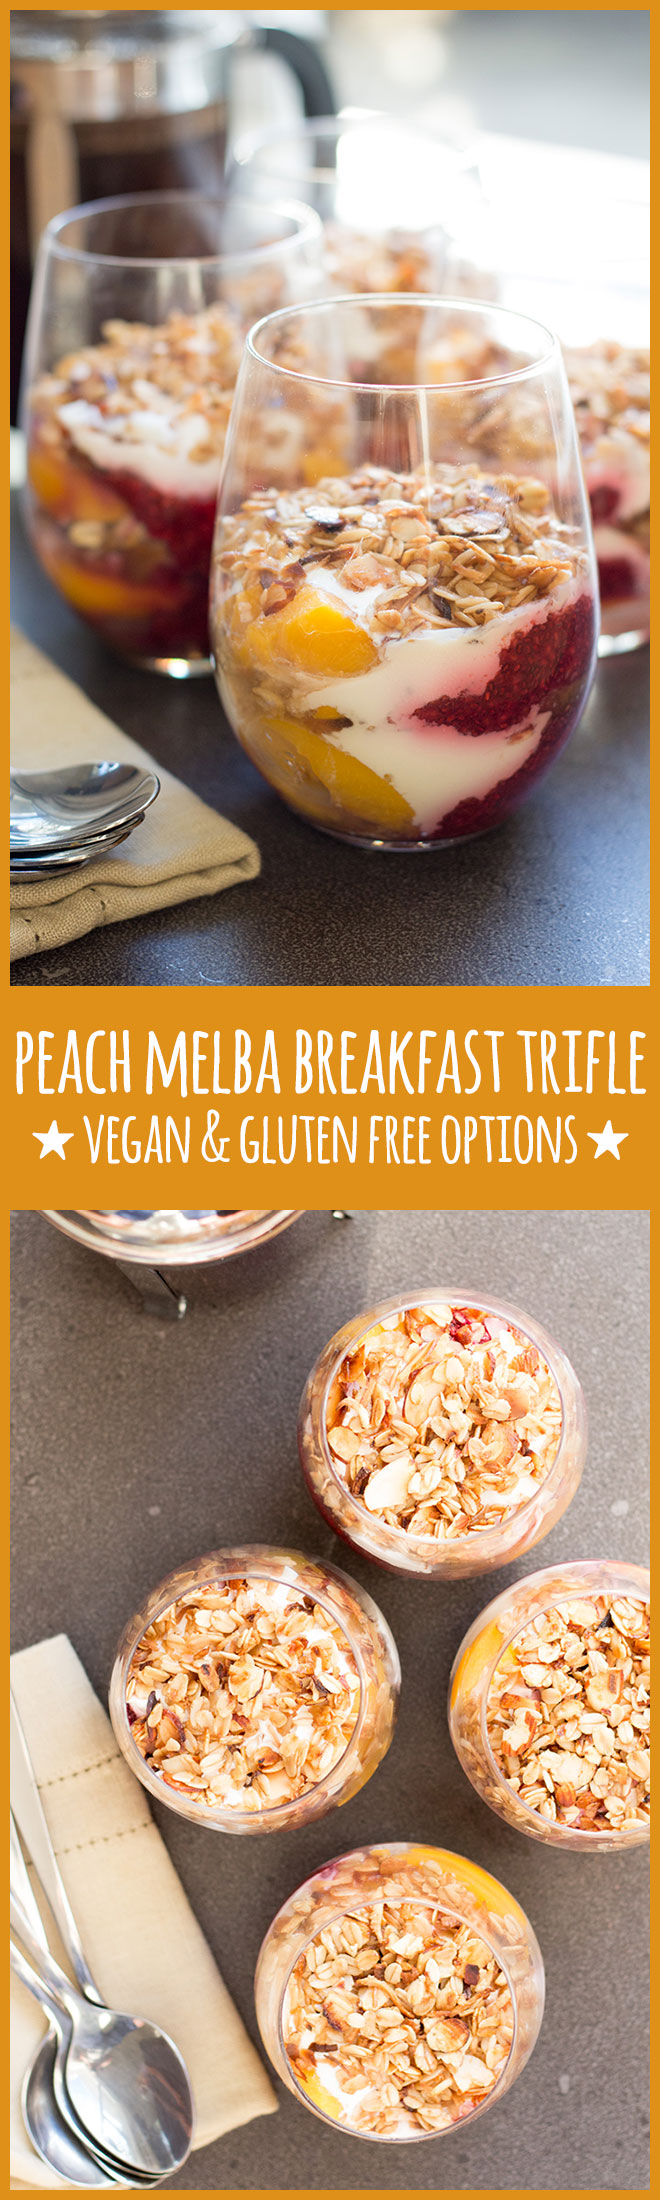 The tried and true peach melba combo of peaches and raspberries works perfectly in this healthy-ish breakfast trifle. Gluten free and vegan optional.